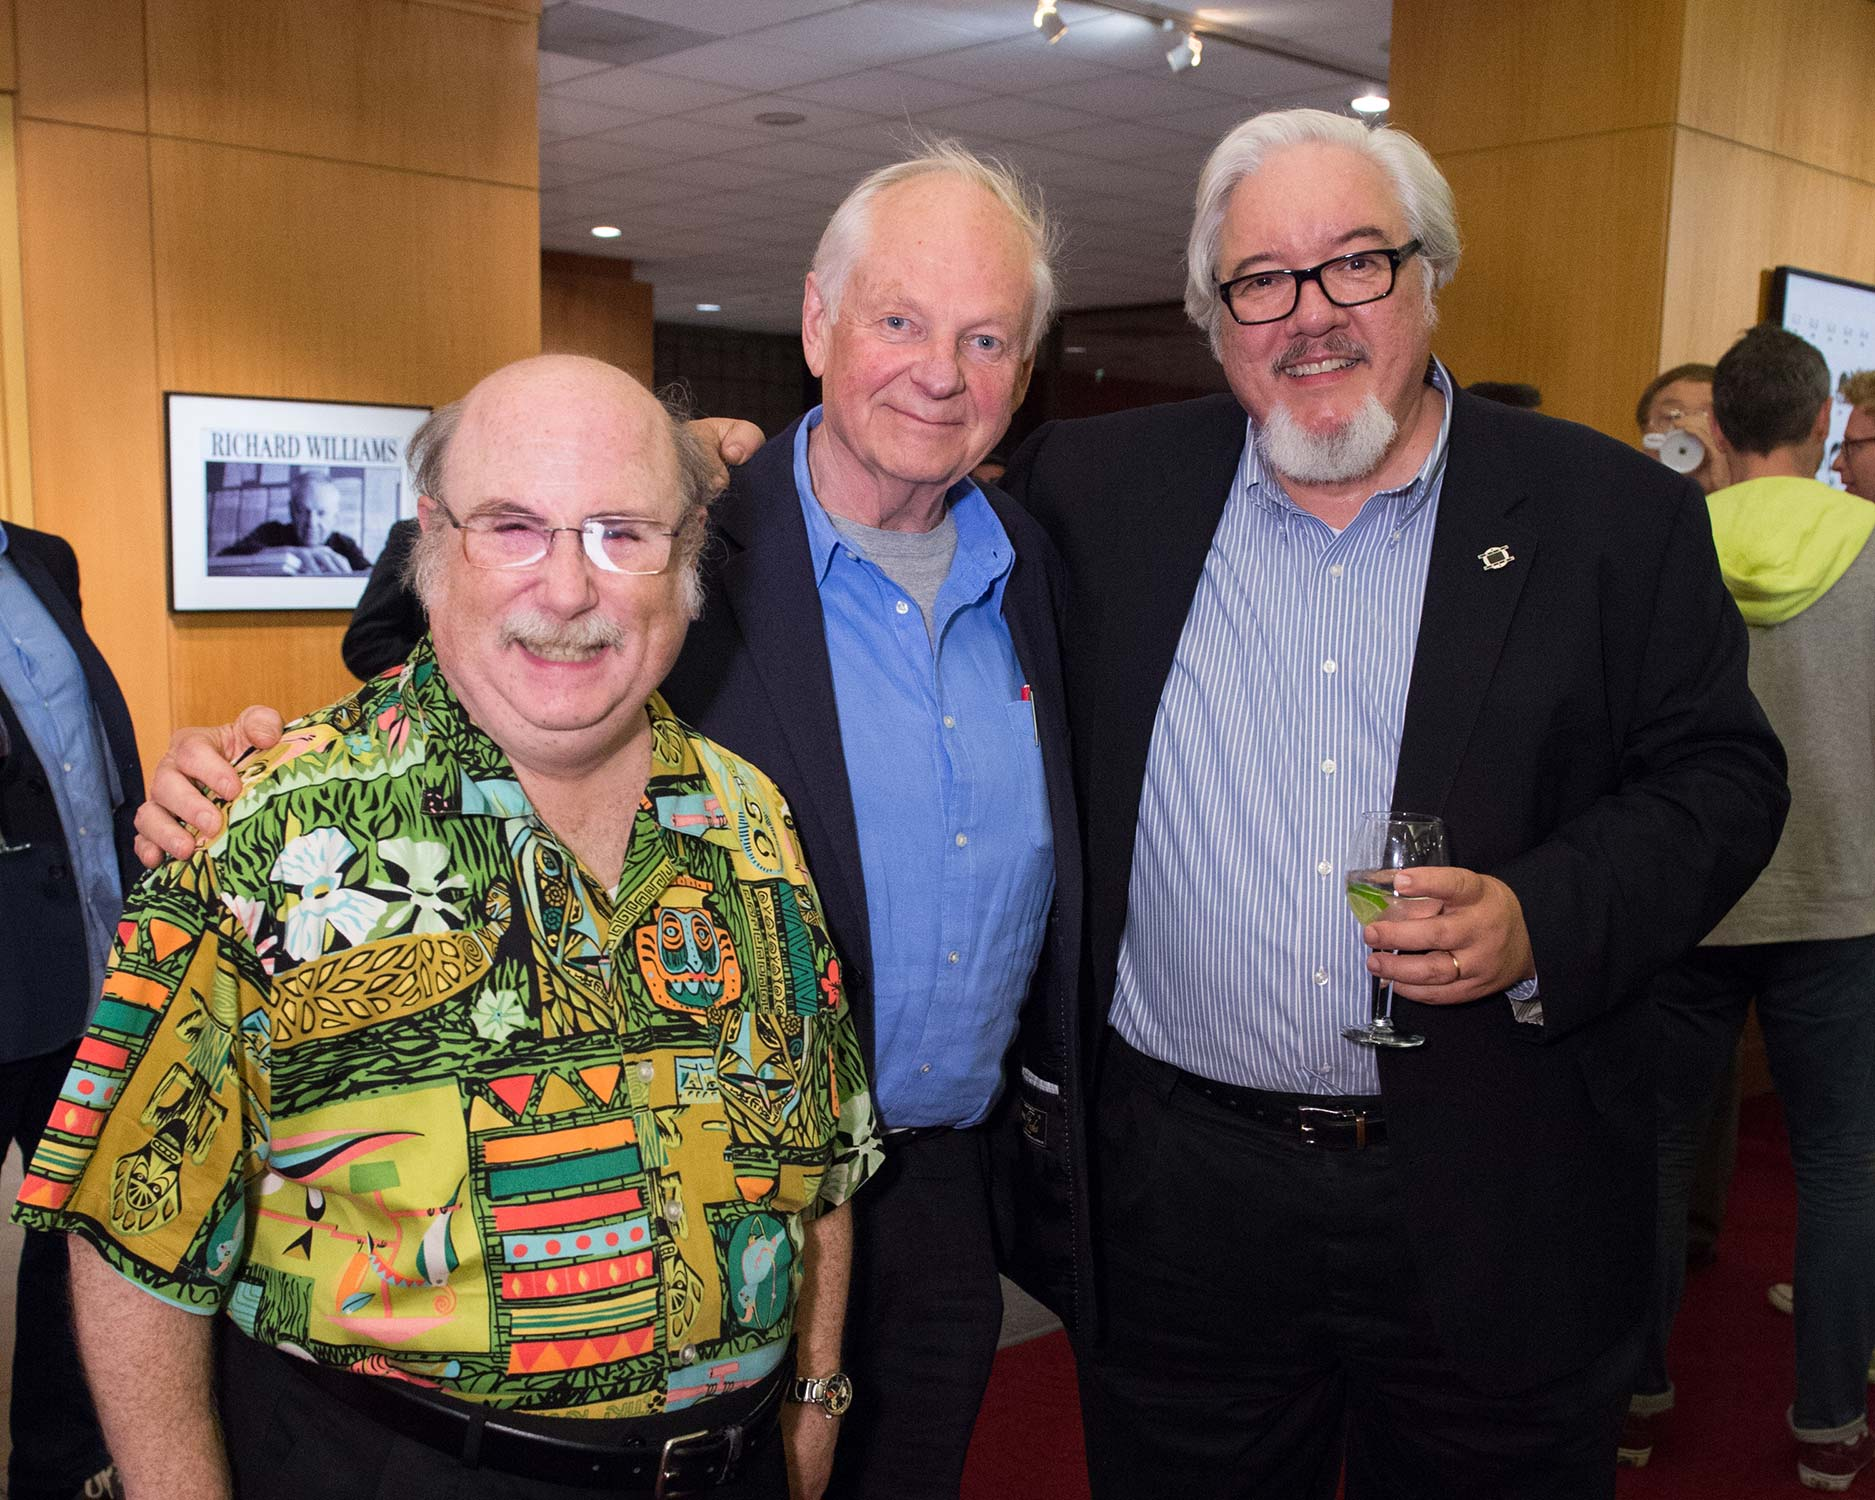 Animator Eric Goldberg (left), Oscar®-winning animator Richard Williams (center) and animator Tom Sito